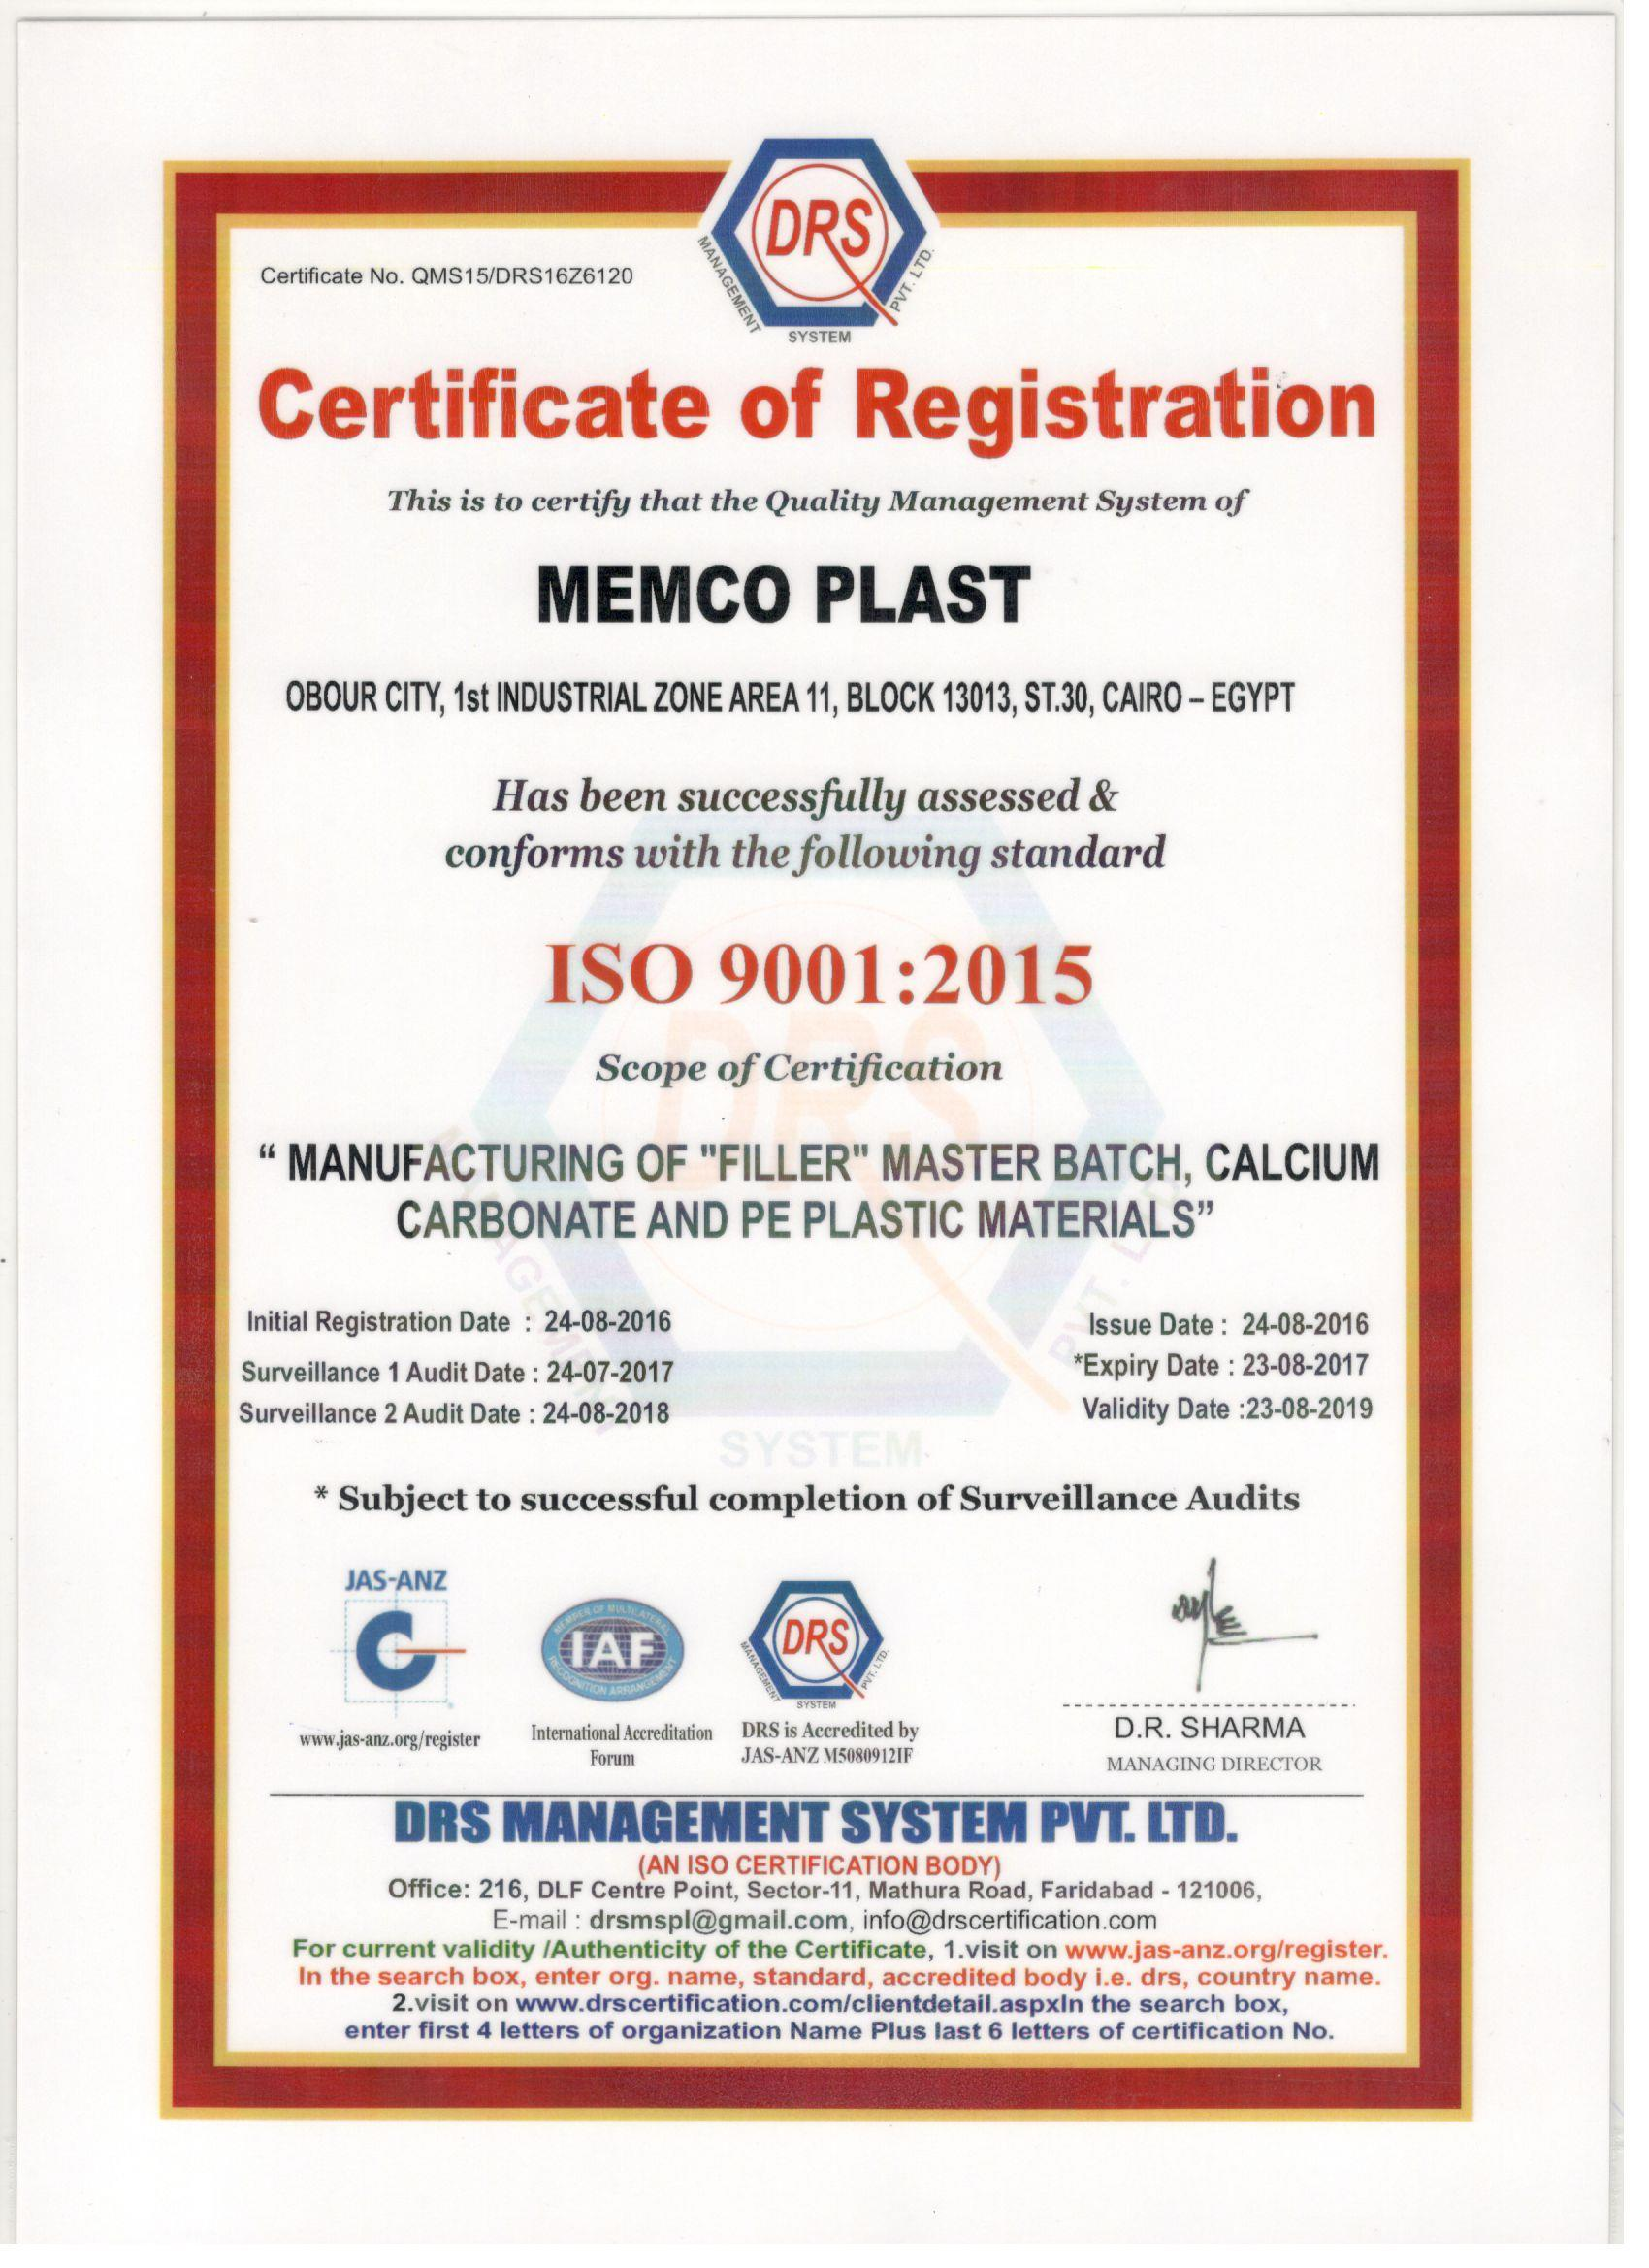 About - MEMCO PLAST